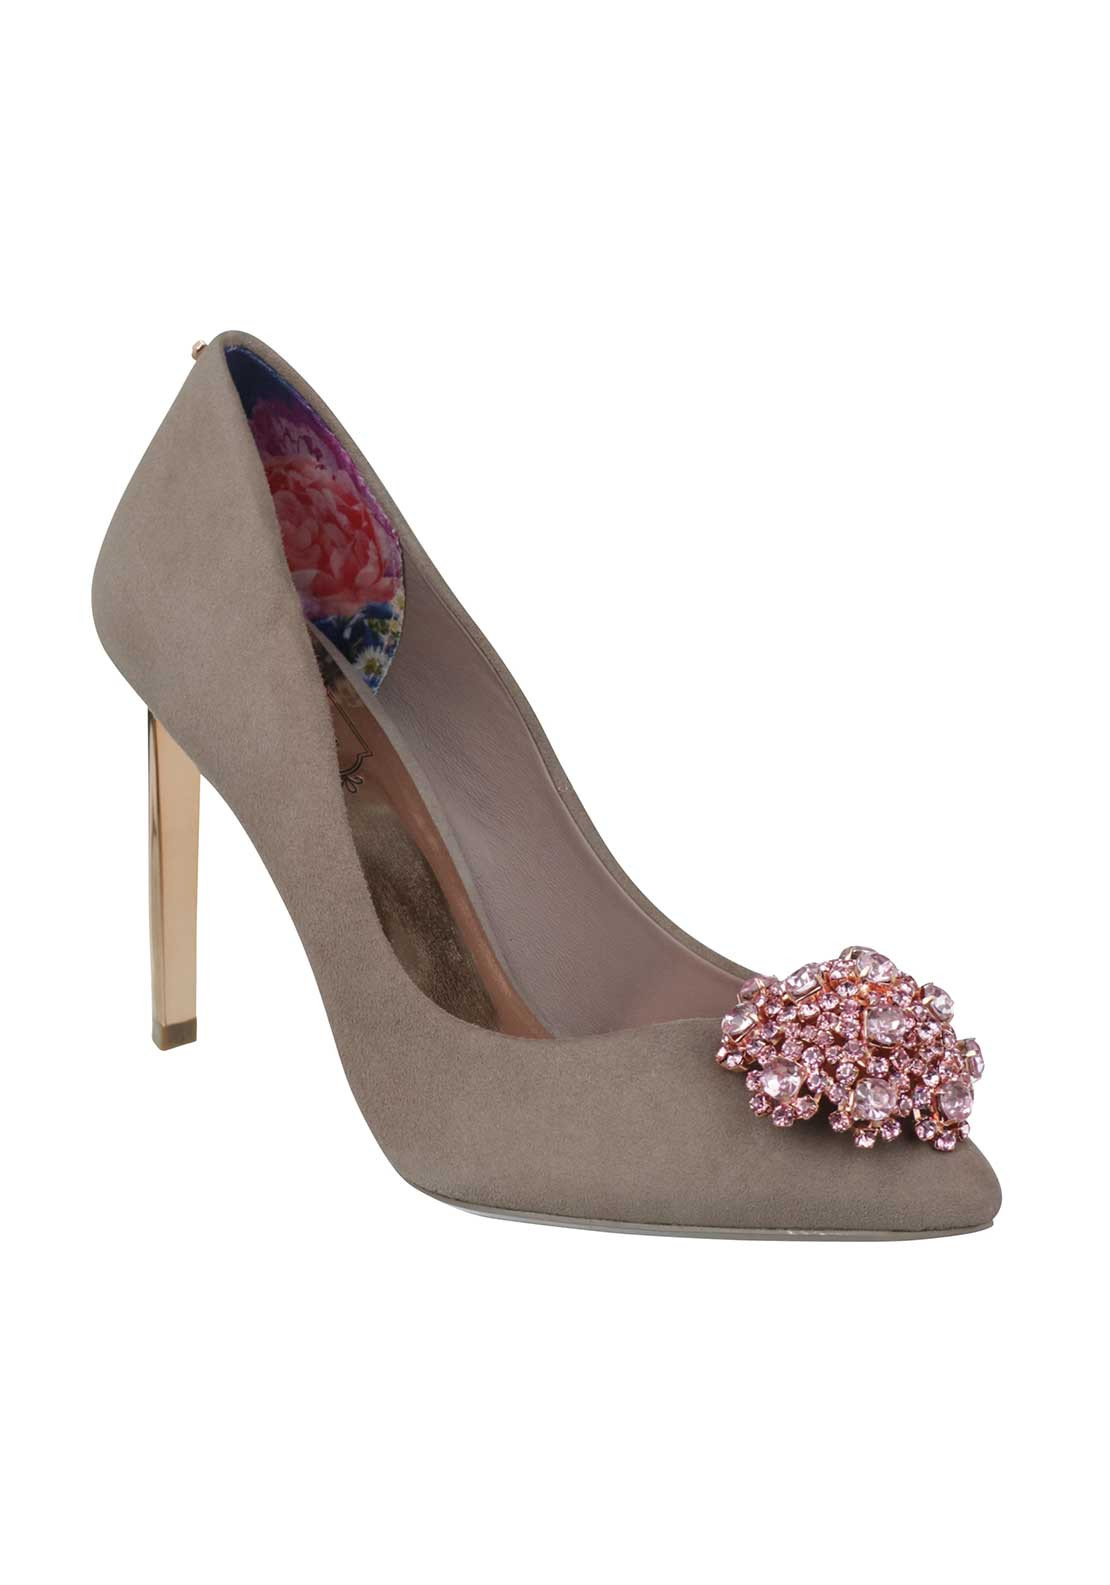 d0a6c6d97 Ted Baker Womens Peetch Suede Heeled Shoes